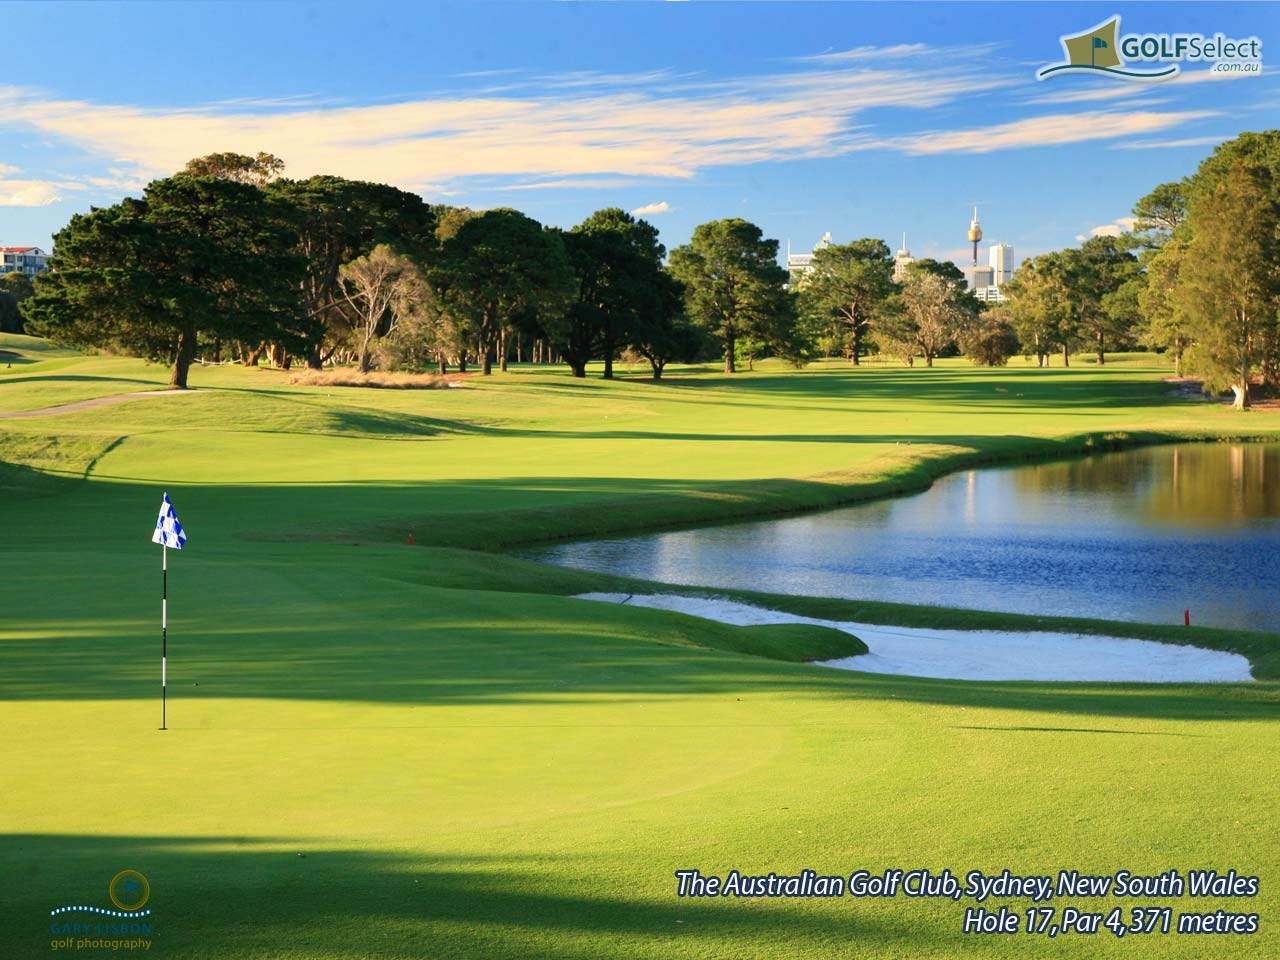 the australian golf club rosebery new south wales 2018 golfselect. Black Bedroom Furniture Sets. Home Design Ideas